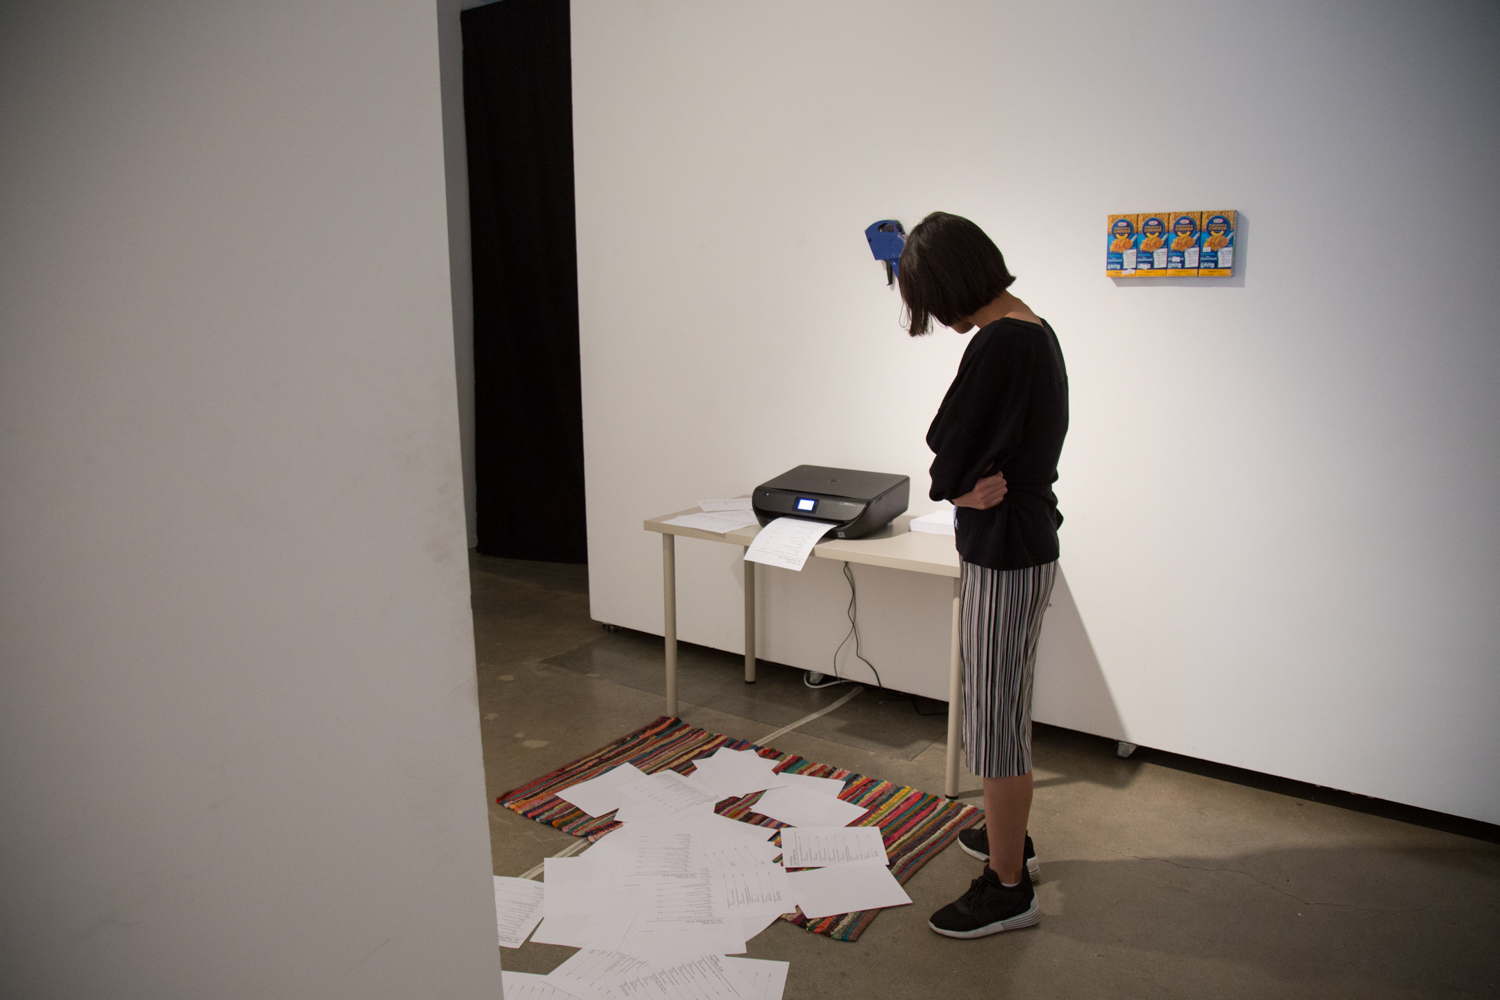 Person looking at a printer, printing a pile of papers onto the floor.